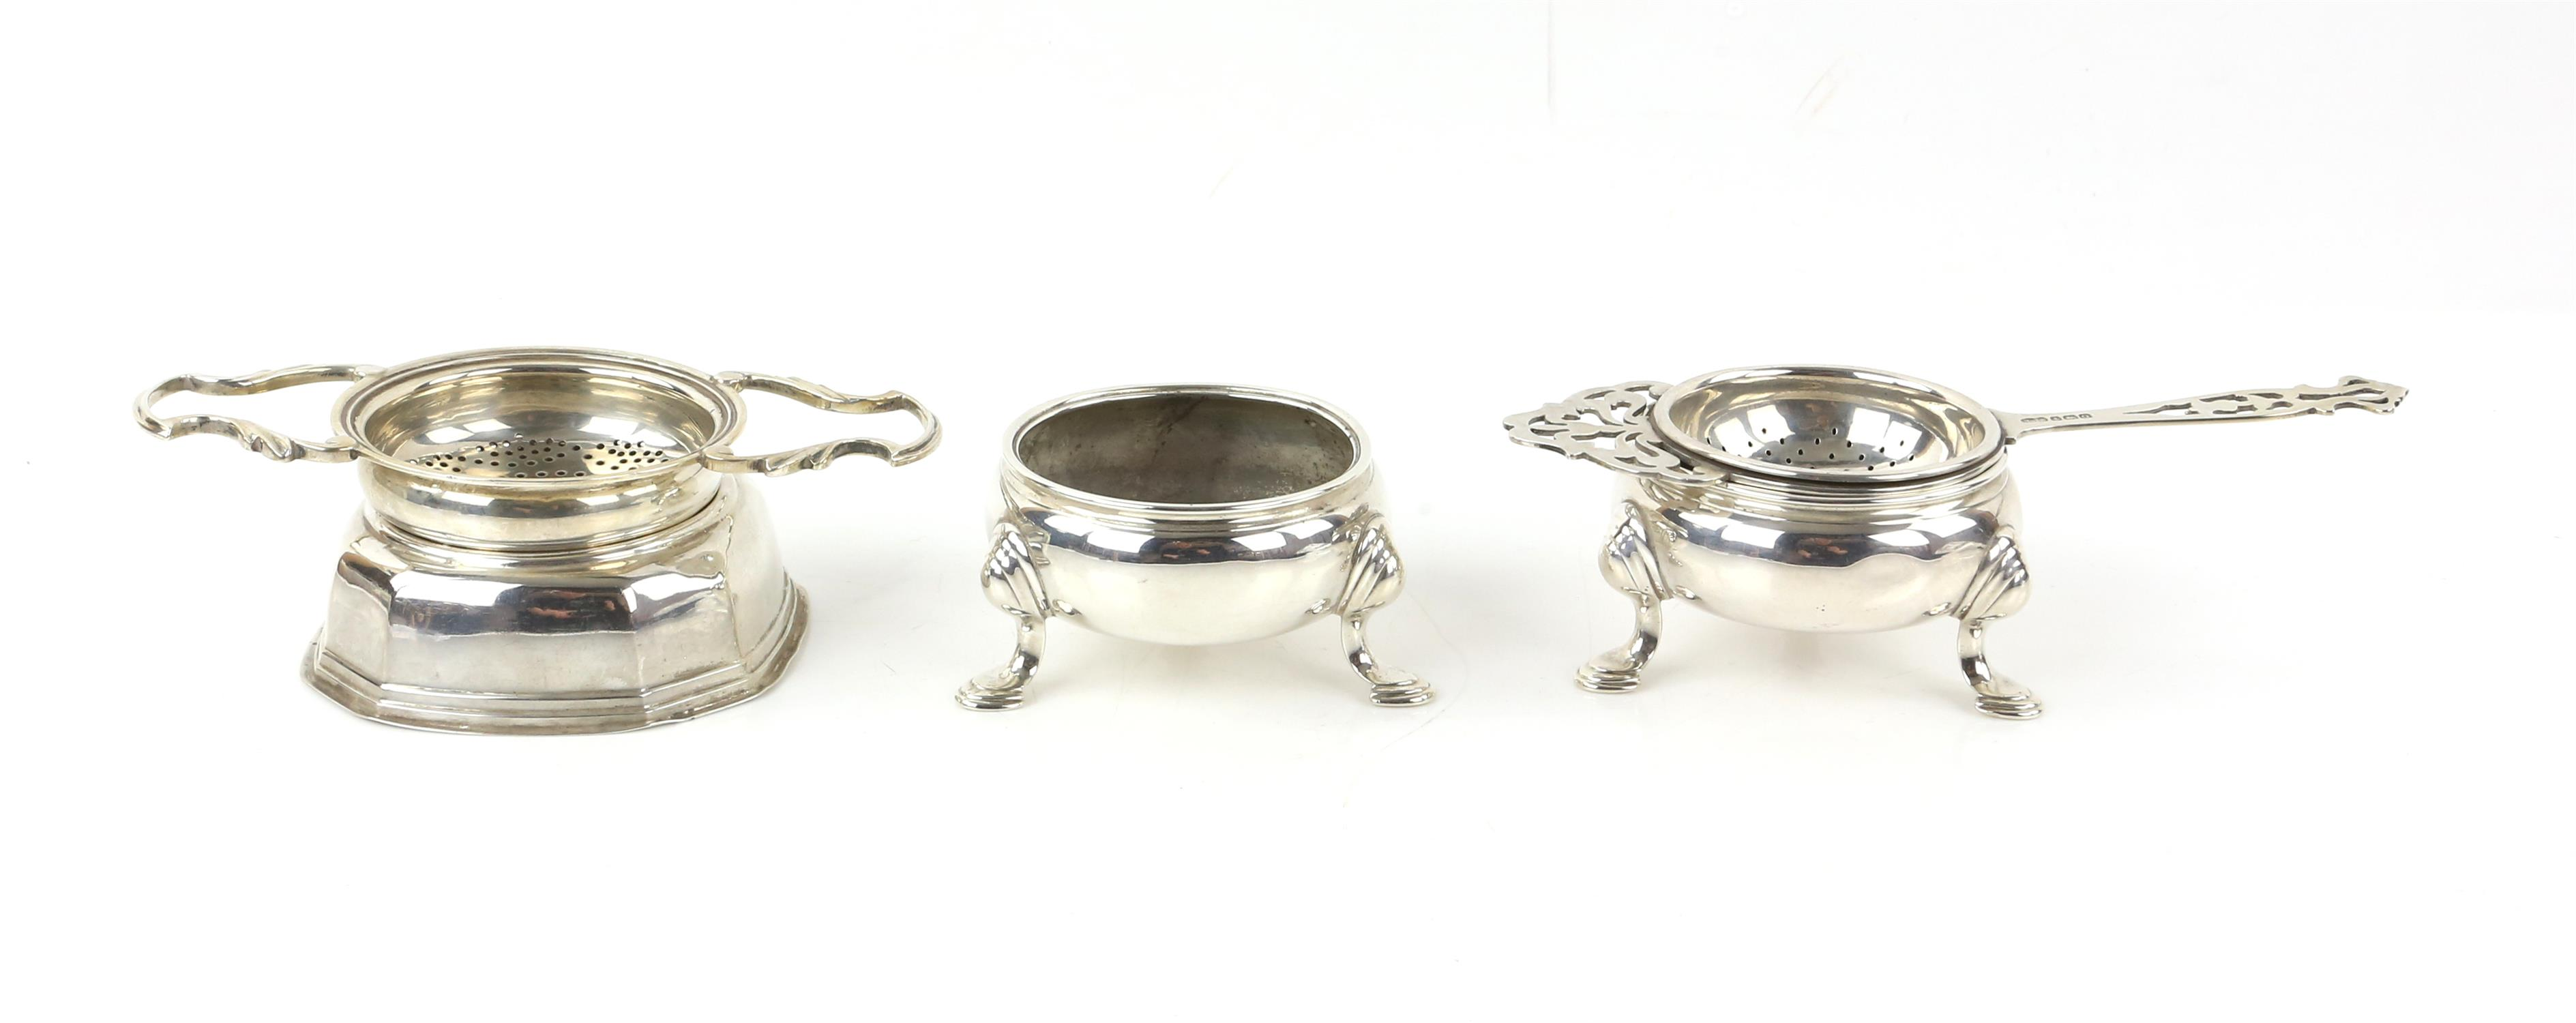 Two matched George III silver cauldron form salts, each on three hoof feet, marks rubbed,